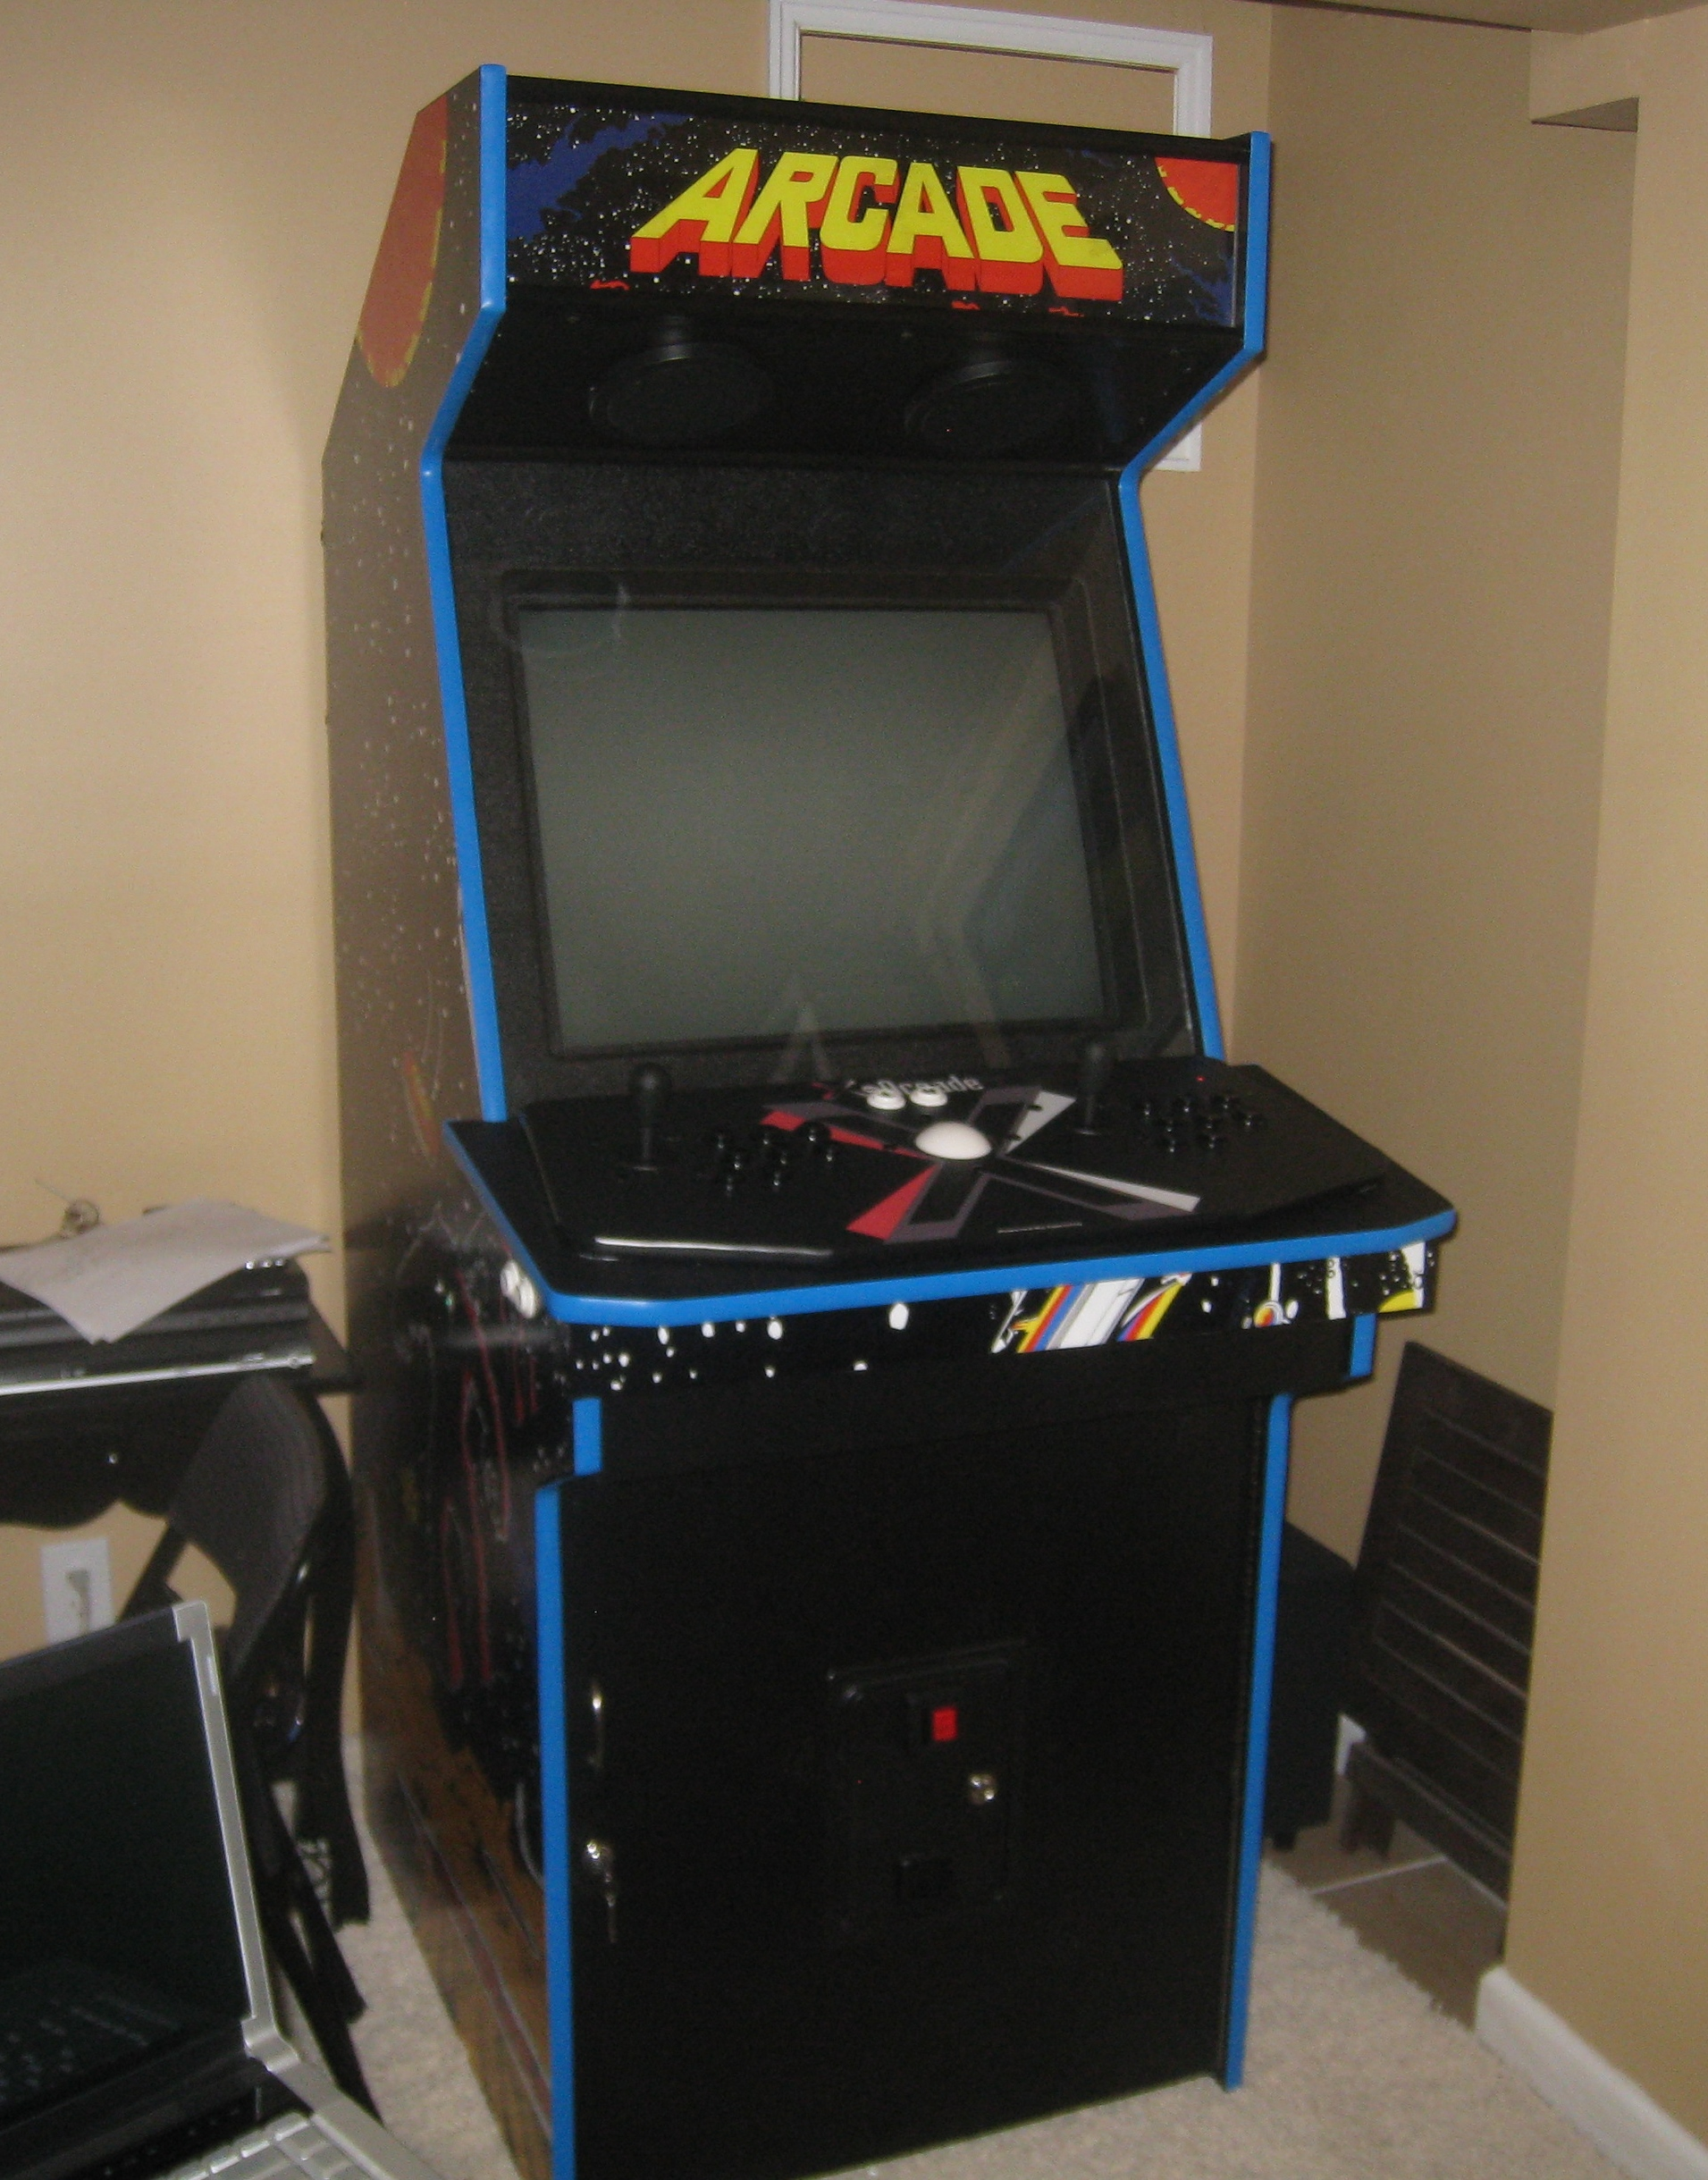 Arcadecab Mame And Arcade News Page 2012 News Archive